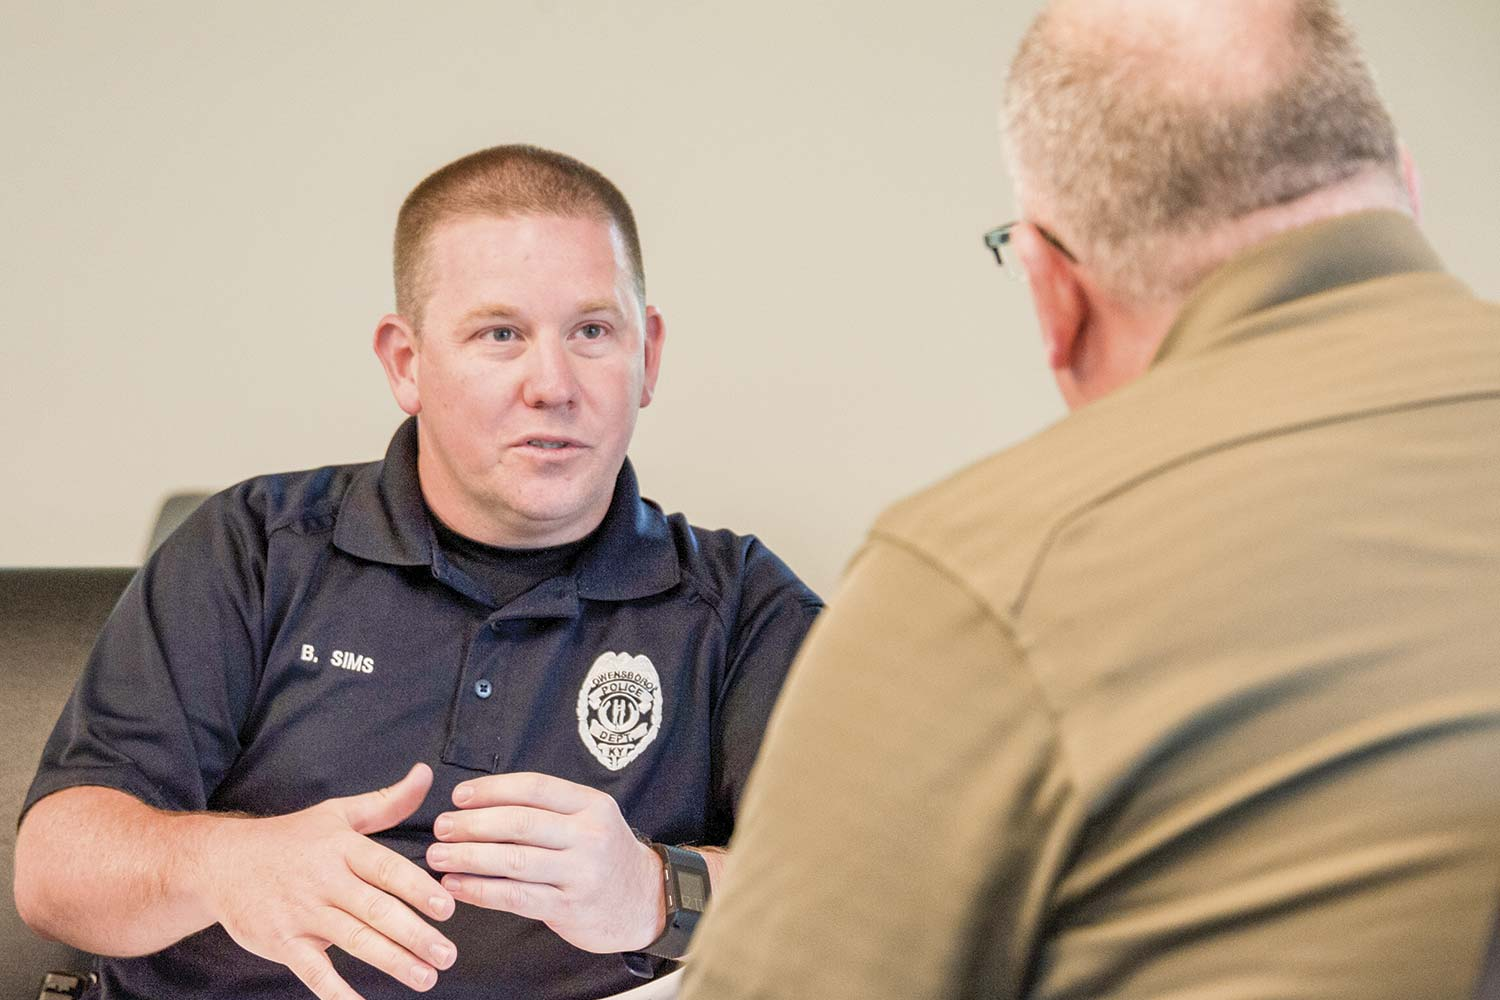 Owensboro Police Sgt. Brandon Sims said the brotherhood of law enforcement plays a role in his decision to serve as a peer member of the KYLEAP team. (Photo by Jim Robertson)